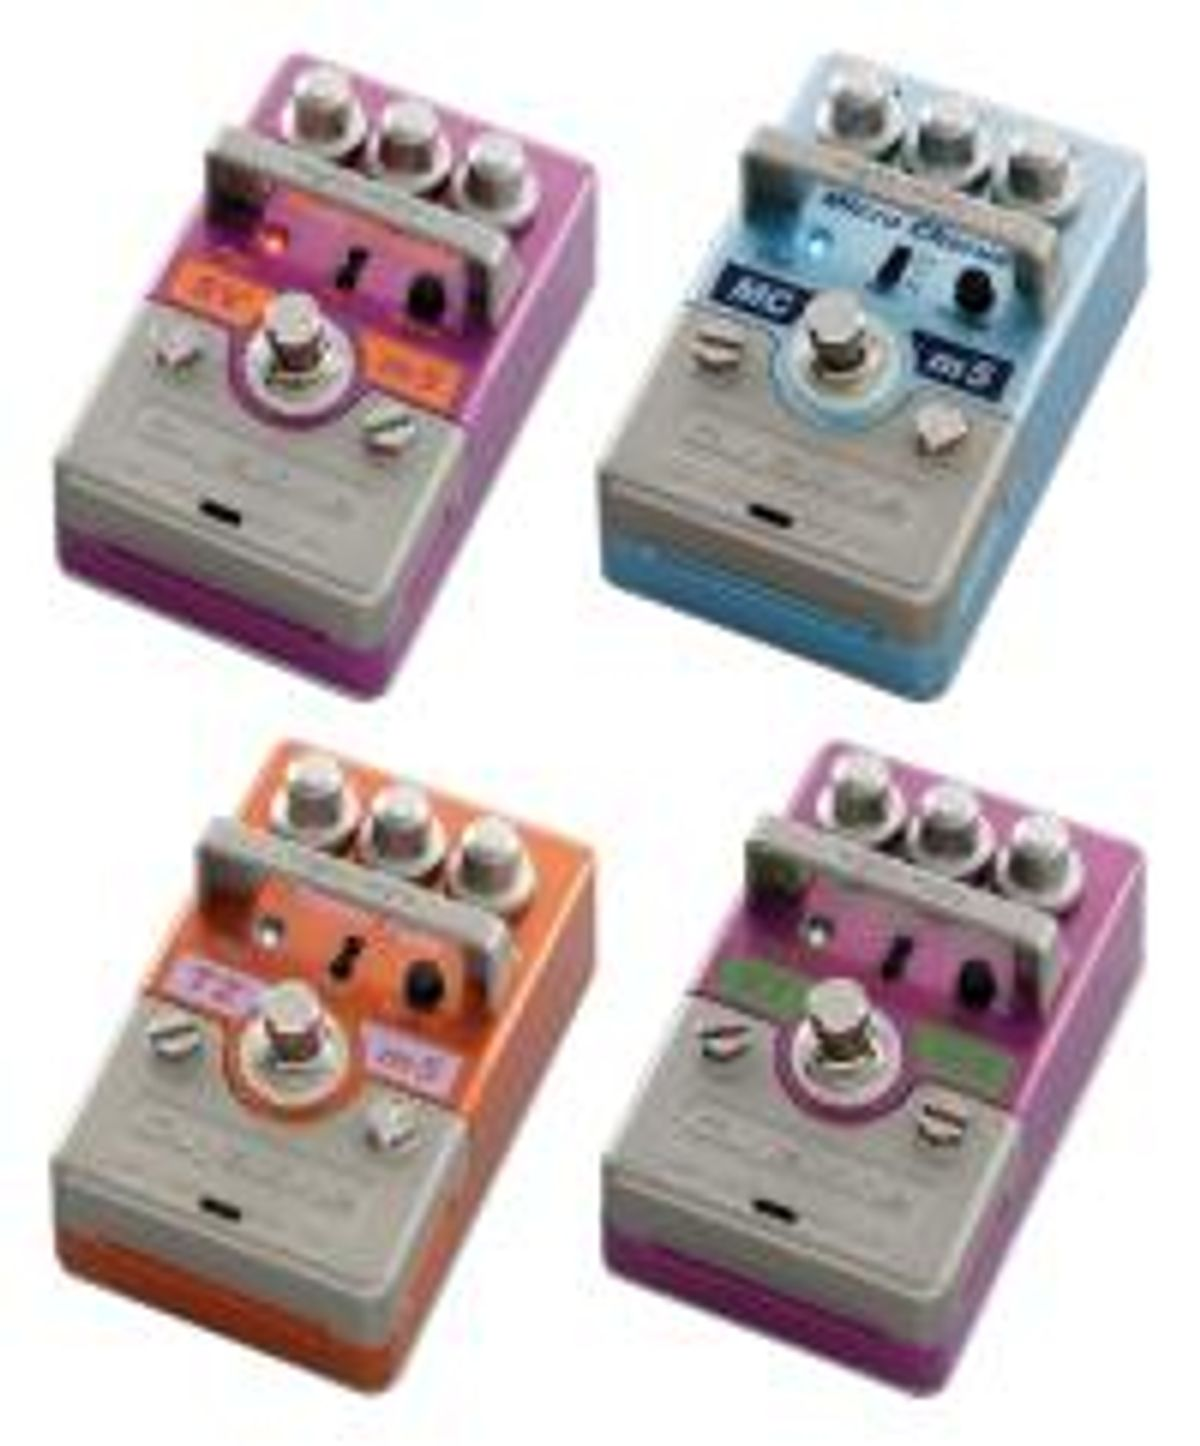 Guyatone Releases Second Batch of Mighty Micros